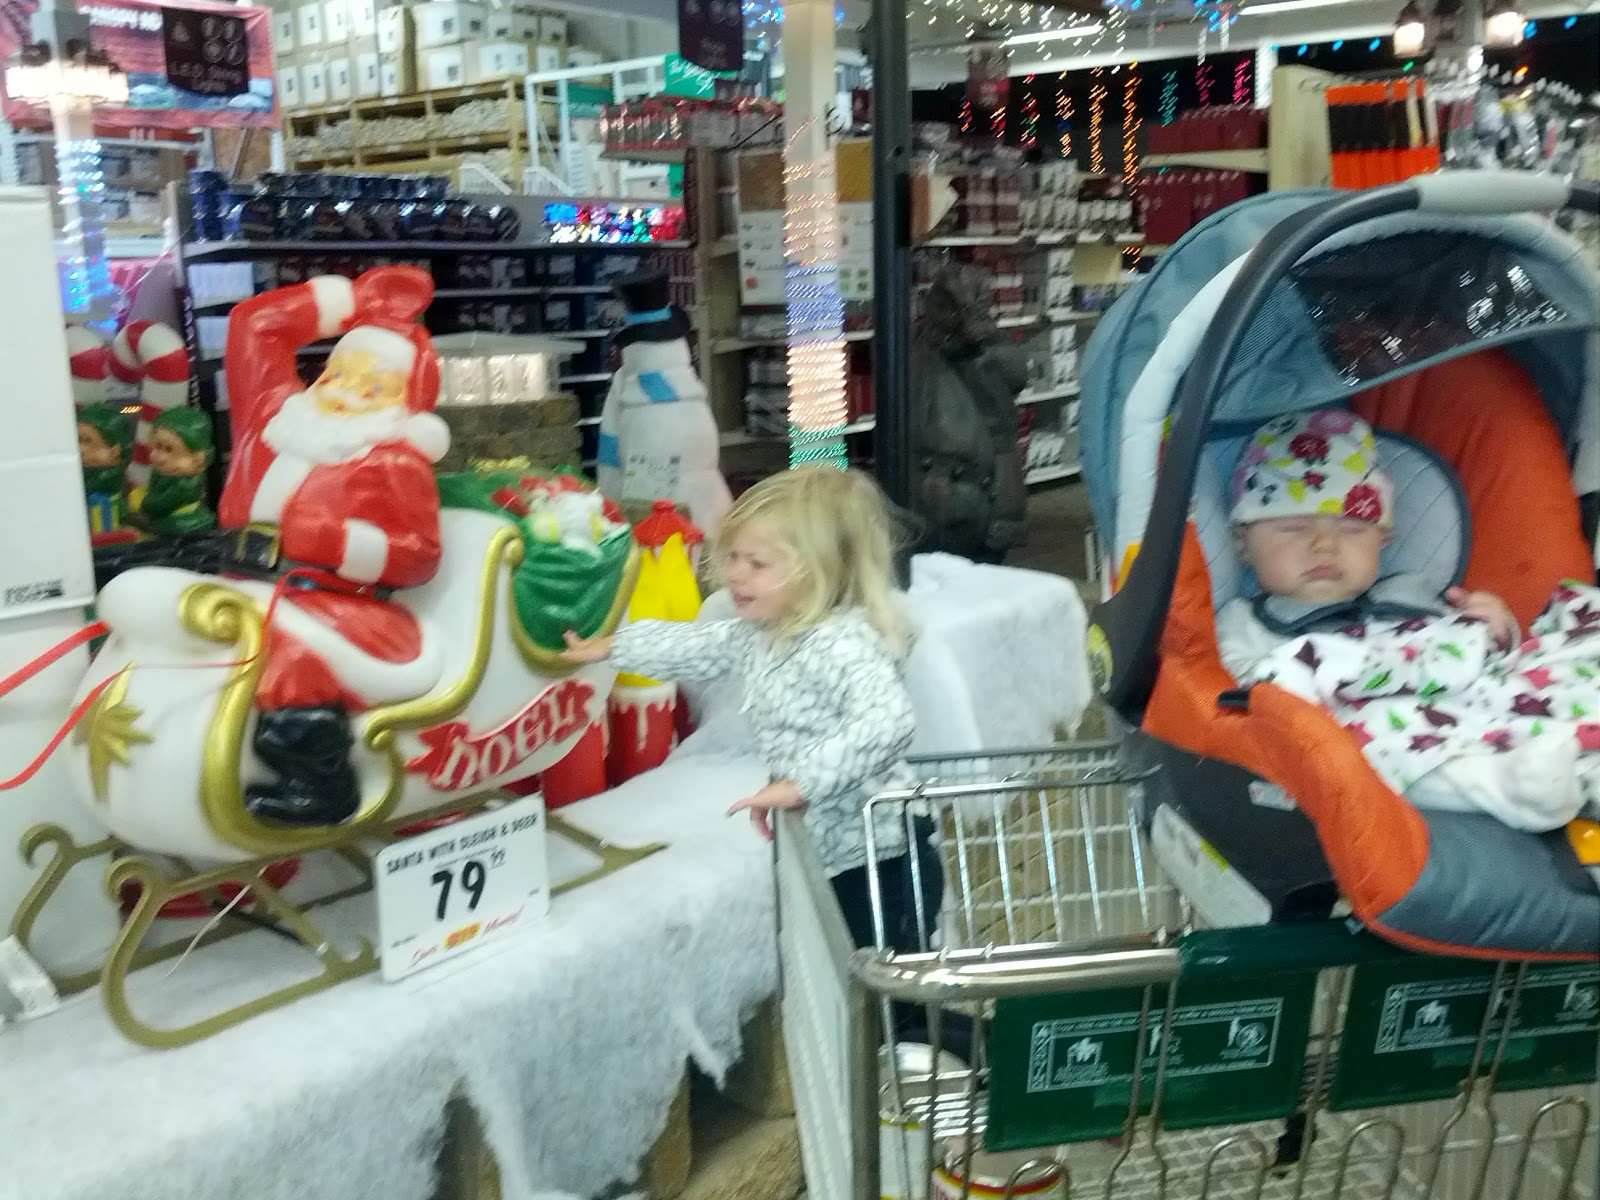 Delightful Menards Is Nothing If Not Predictable. A Year Ago This Weekend, I First  Spotted The Enchanted Forest Getting Set Up. Today, I Took Both Of My Girls  There To ... Idea